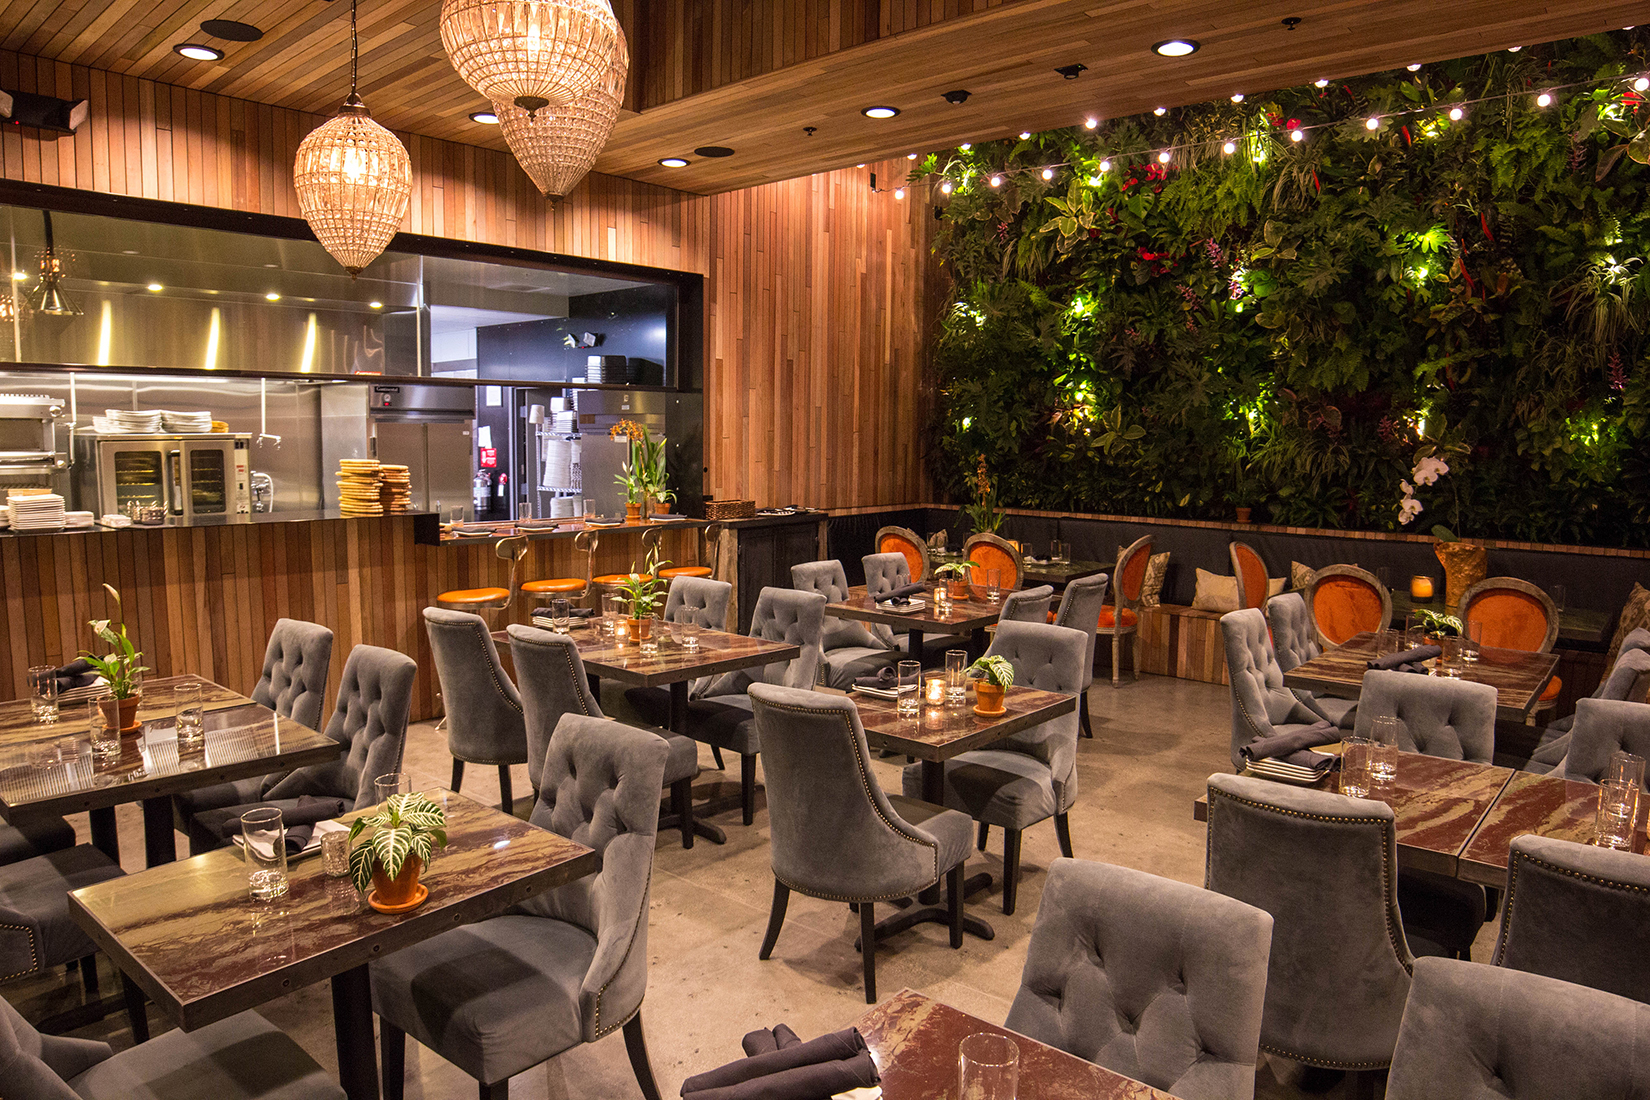 The Patio Group: Restaurant Development & Hospitality